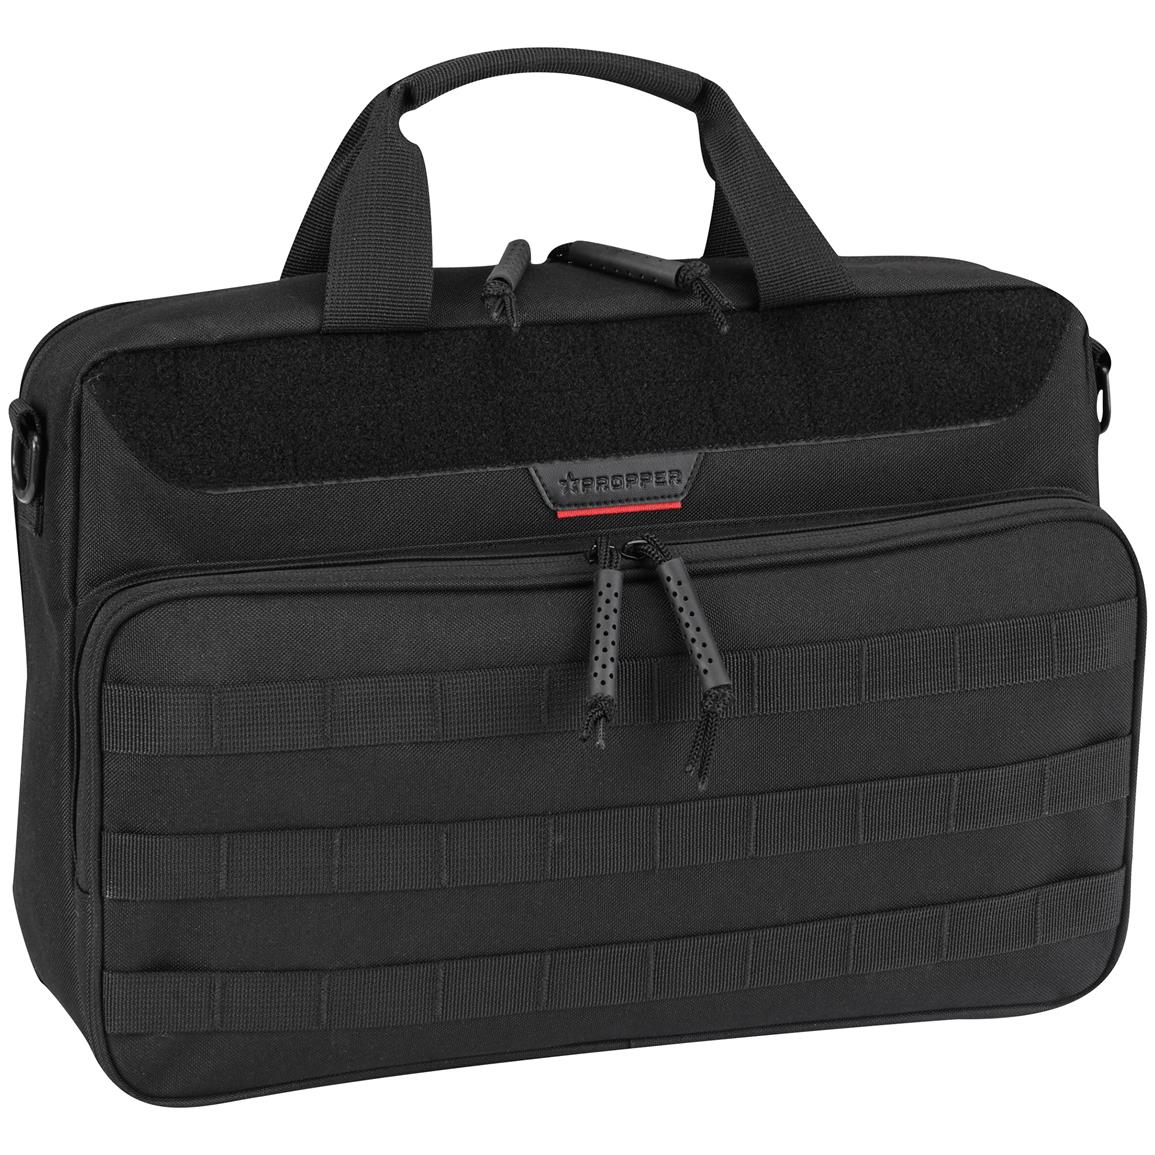 "Propper 11"" x 16"" Daily Carry Organizer"